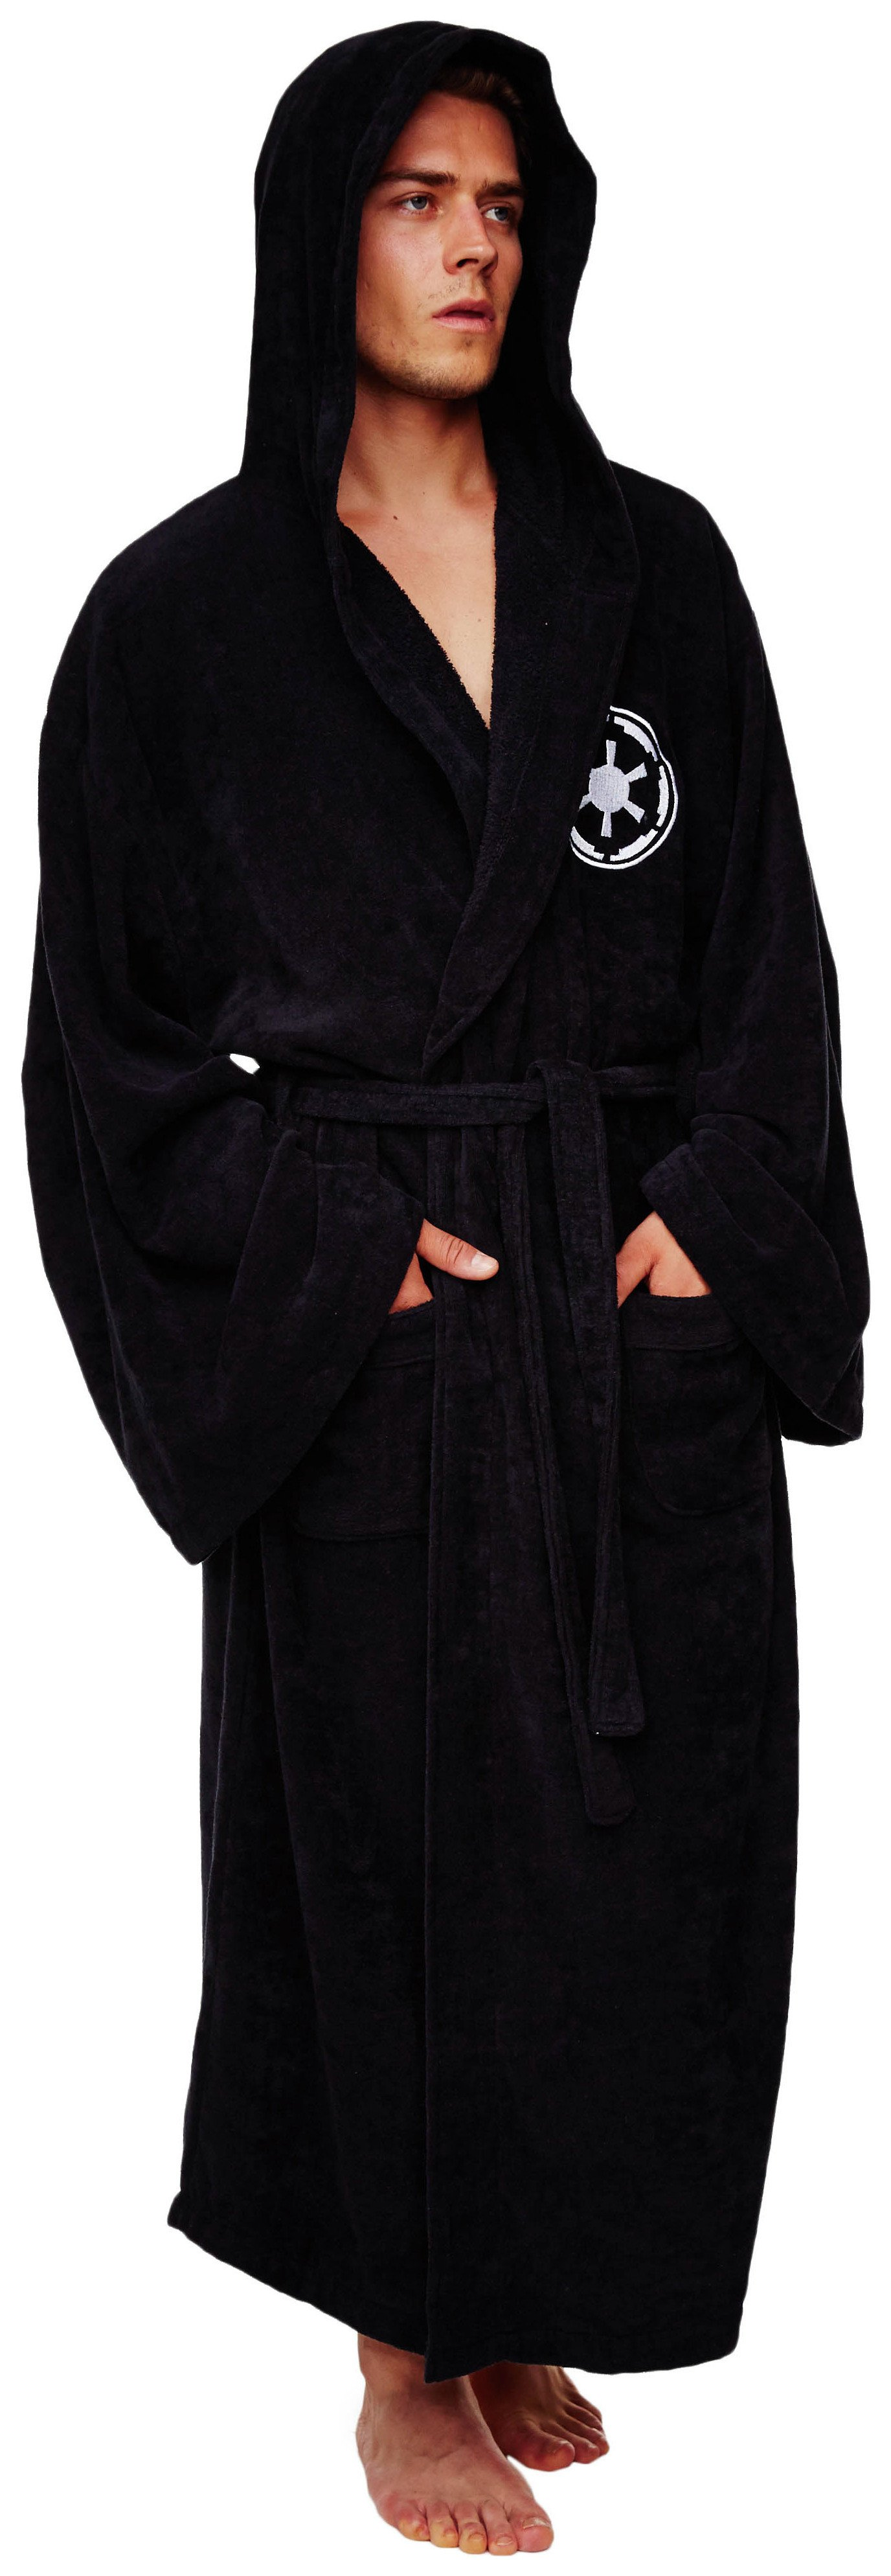 Image of Stars Wars Galatic Robe